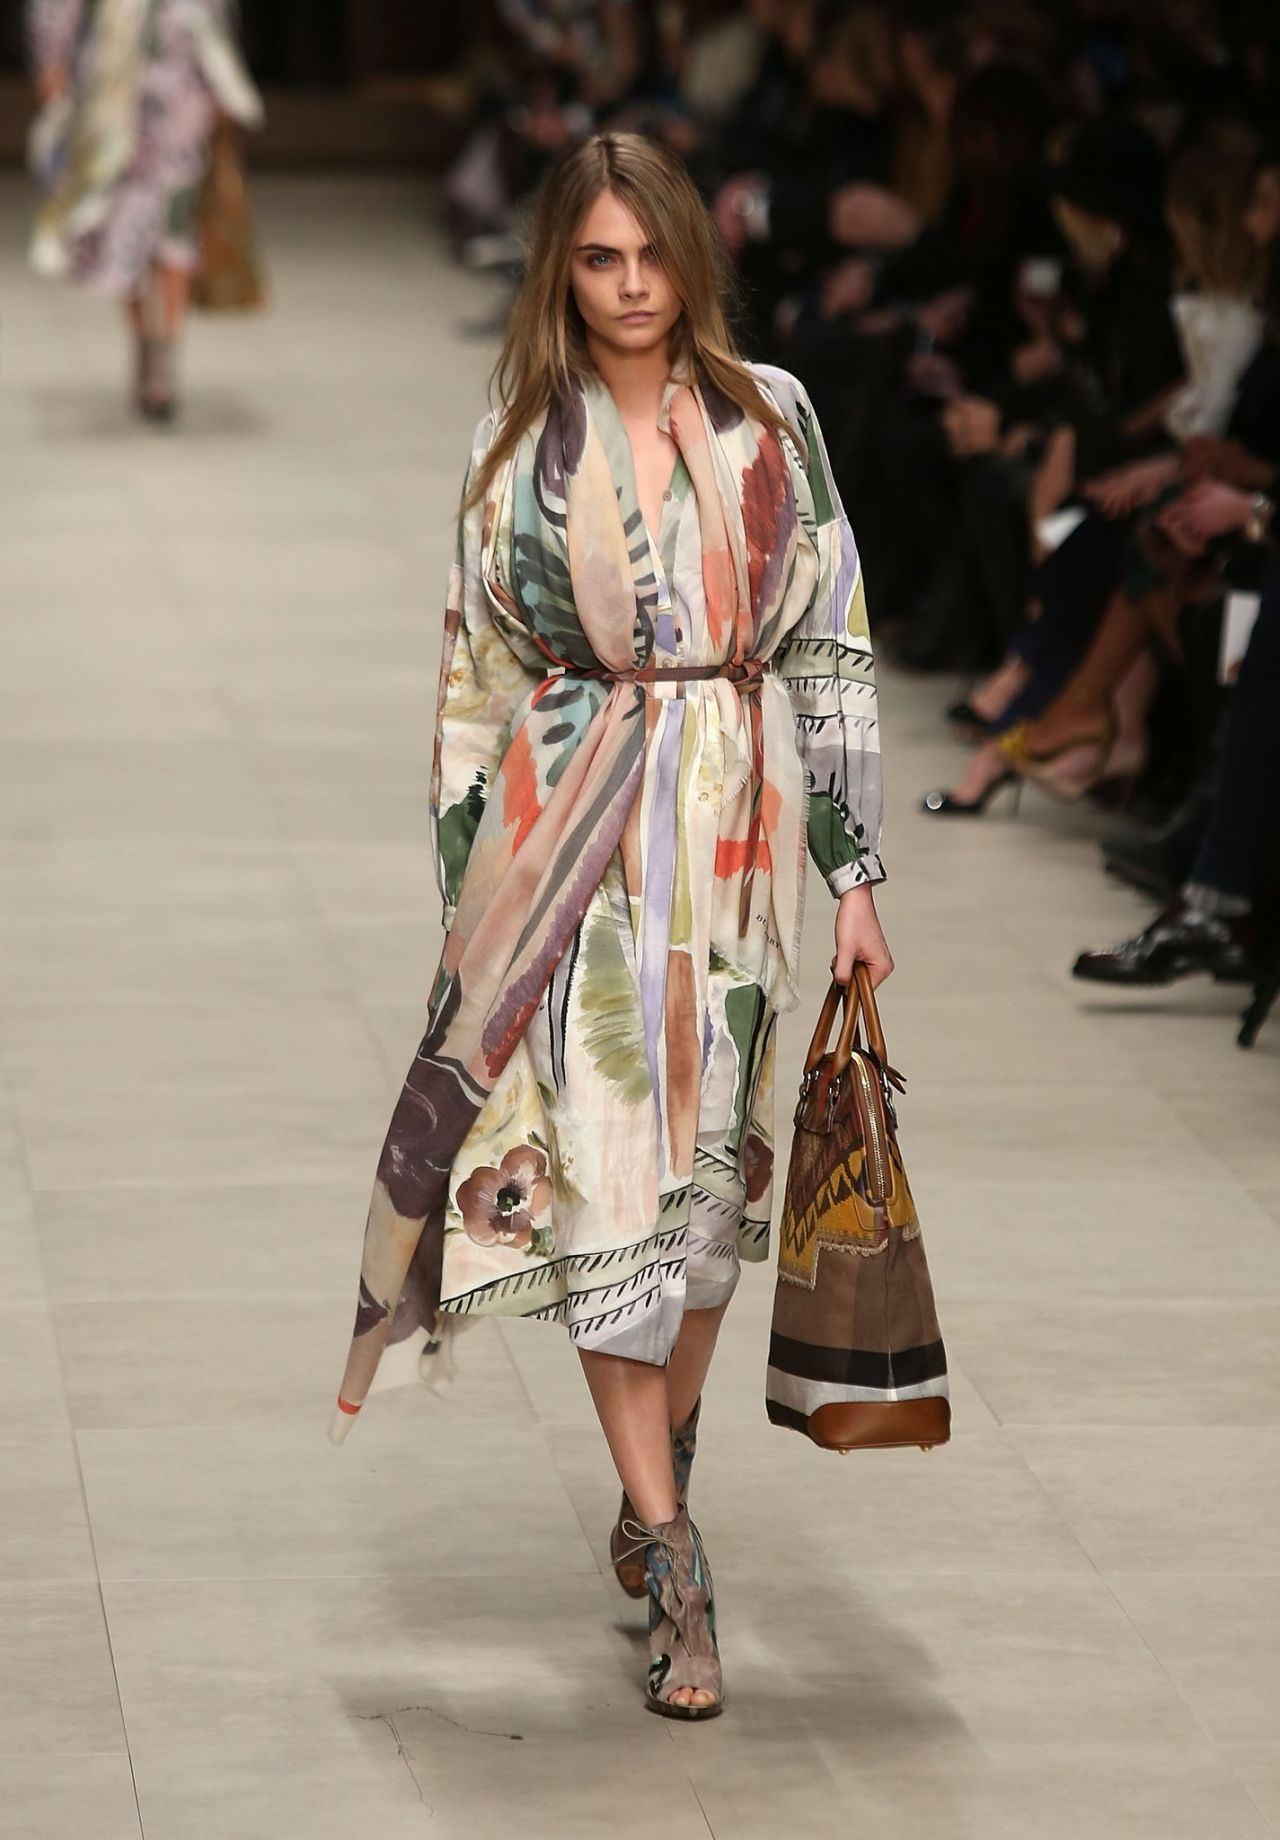 2014 Fall Winter 2015 Fashion Trends For Teens: Burberry Fall/Winter 2014-2015 Show